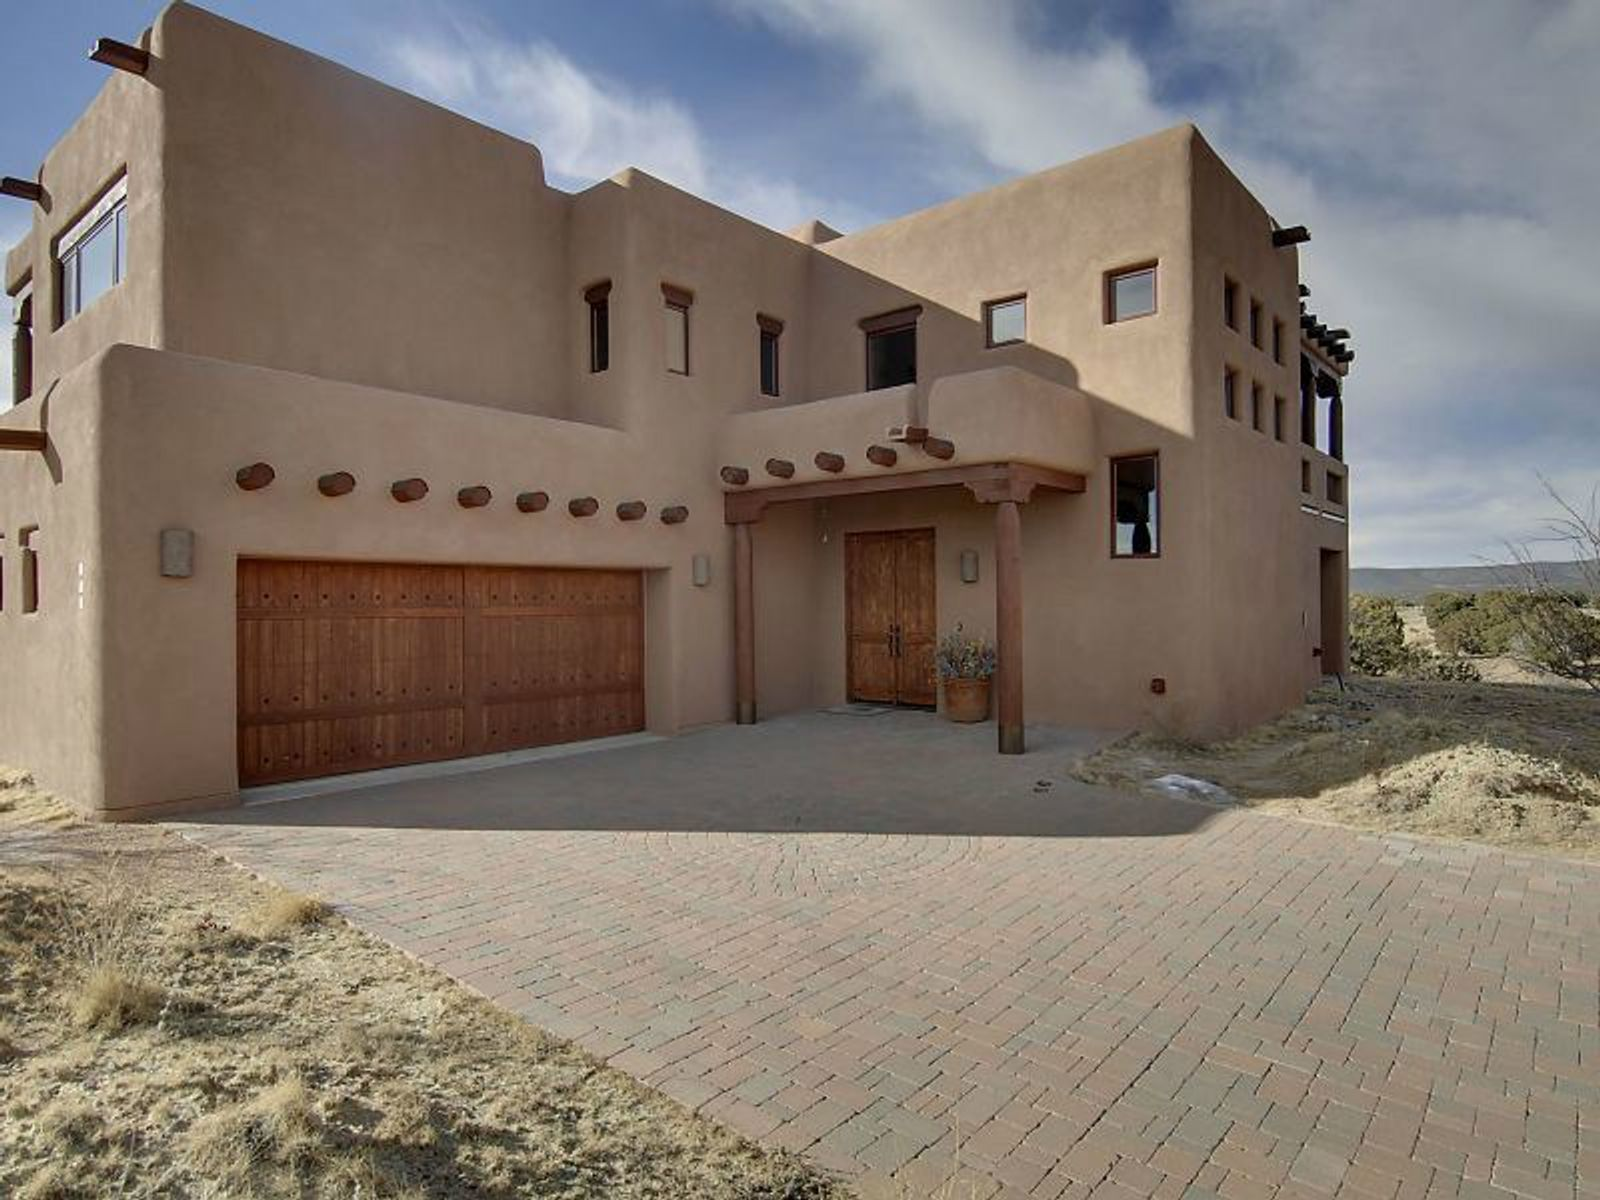 9 Camino De Colores, Santa Fe NM Single Family Home - Santa Fe Real Estate